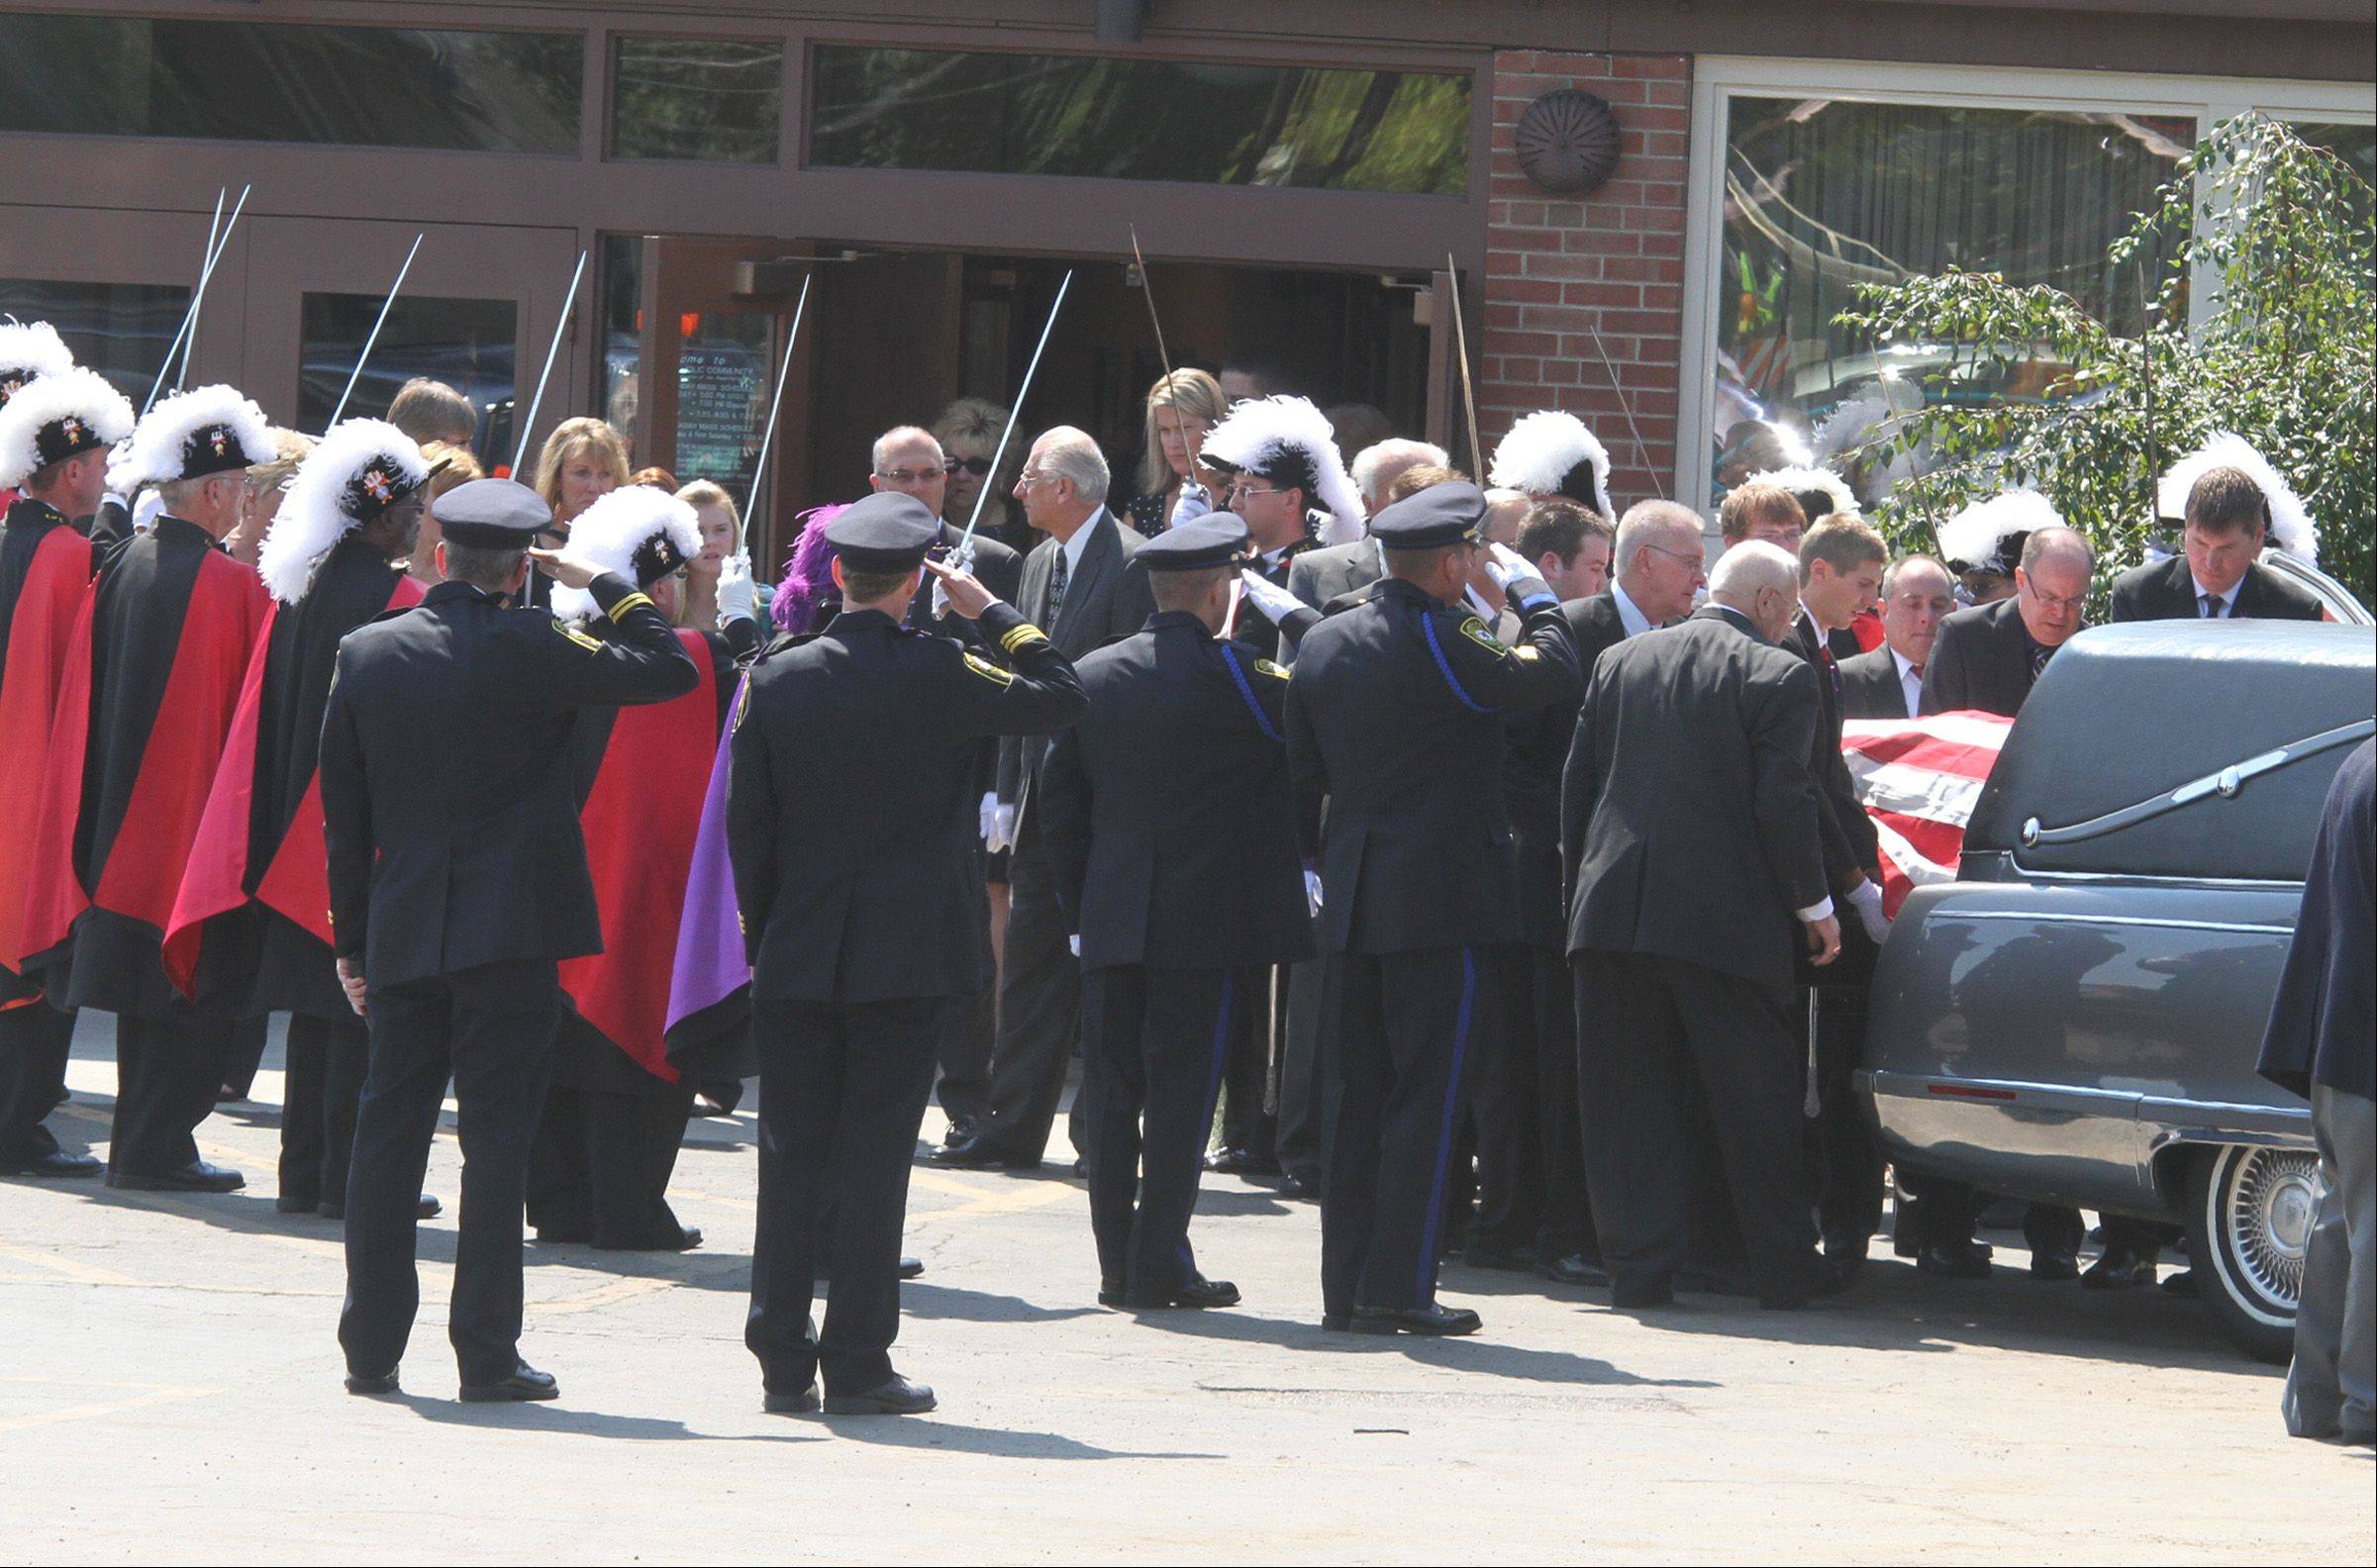 George LeClaire/gleclaire@dailyherald.com Pall-bearers carry the casket of Lombard Village President William Mueller during the funeral following his death Aug. 18 from complications of the West Nile virus.